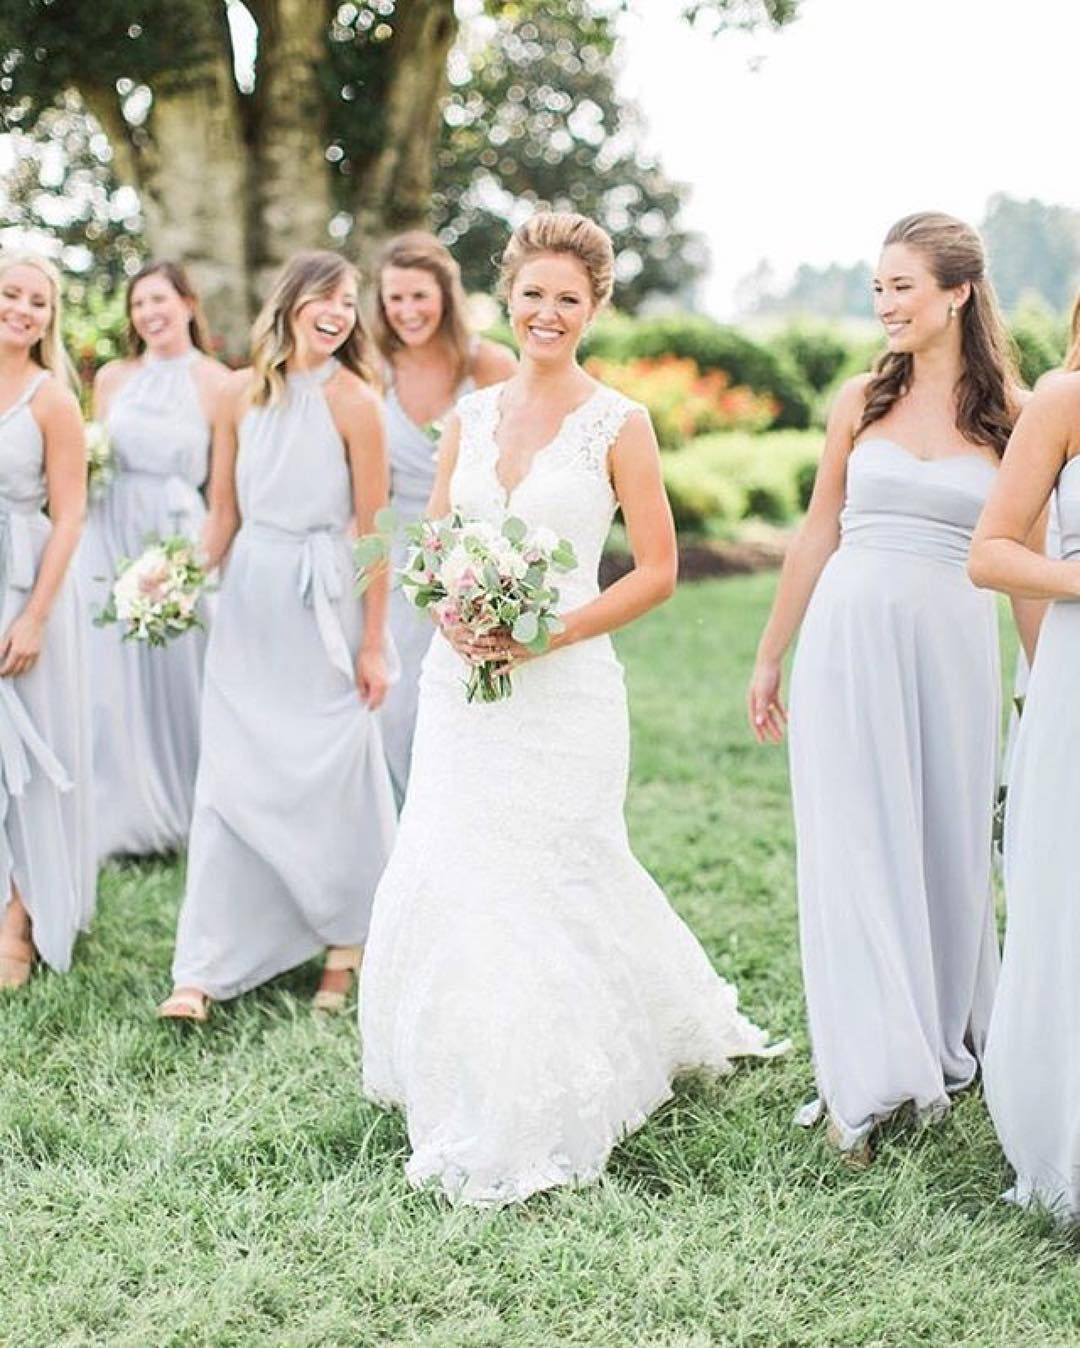 We're Dreaming Of Spring With This Real #Allure #Bride